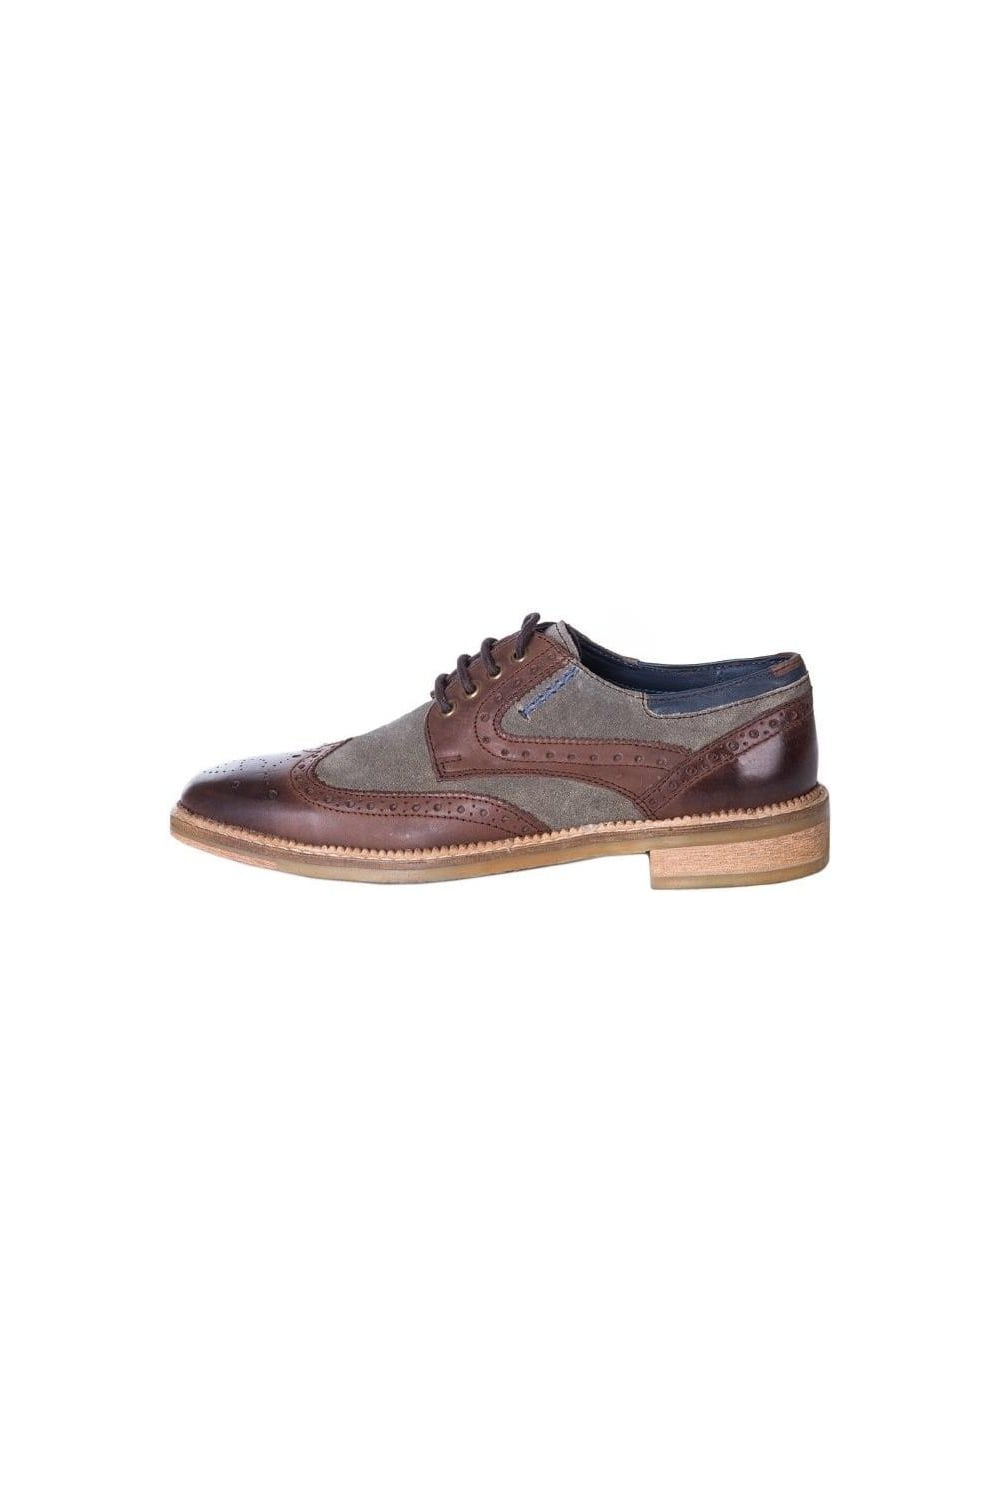 Goodwin Smith Weir Brogue Shoes Brown Intro Clothing